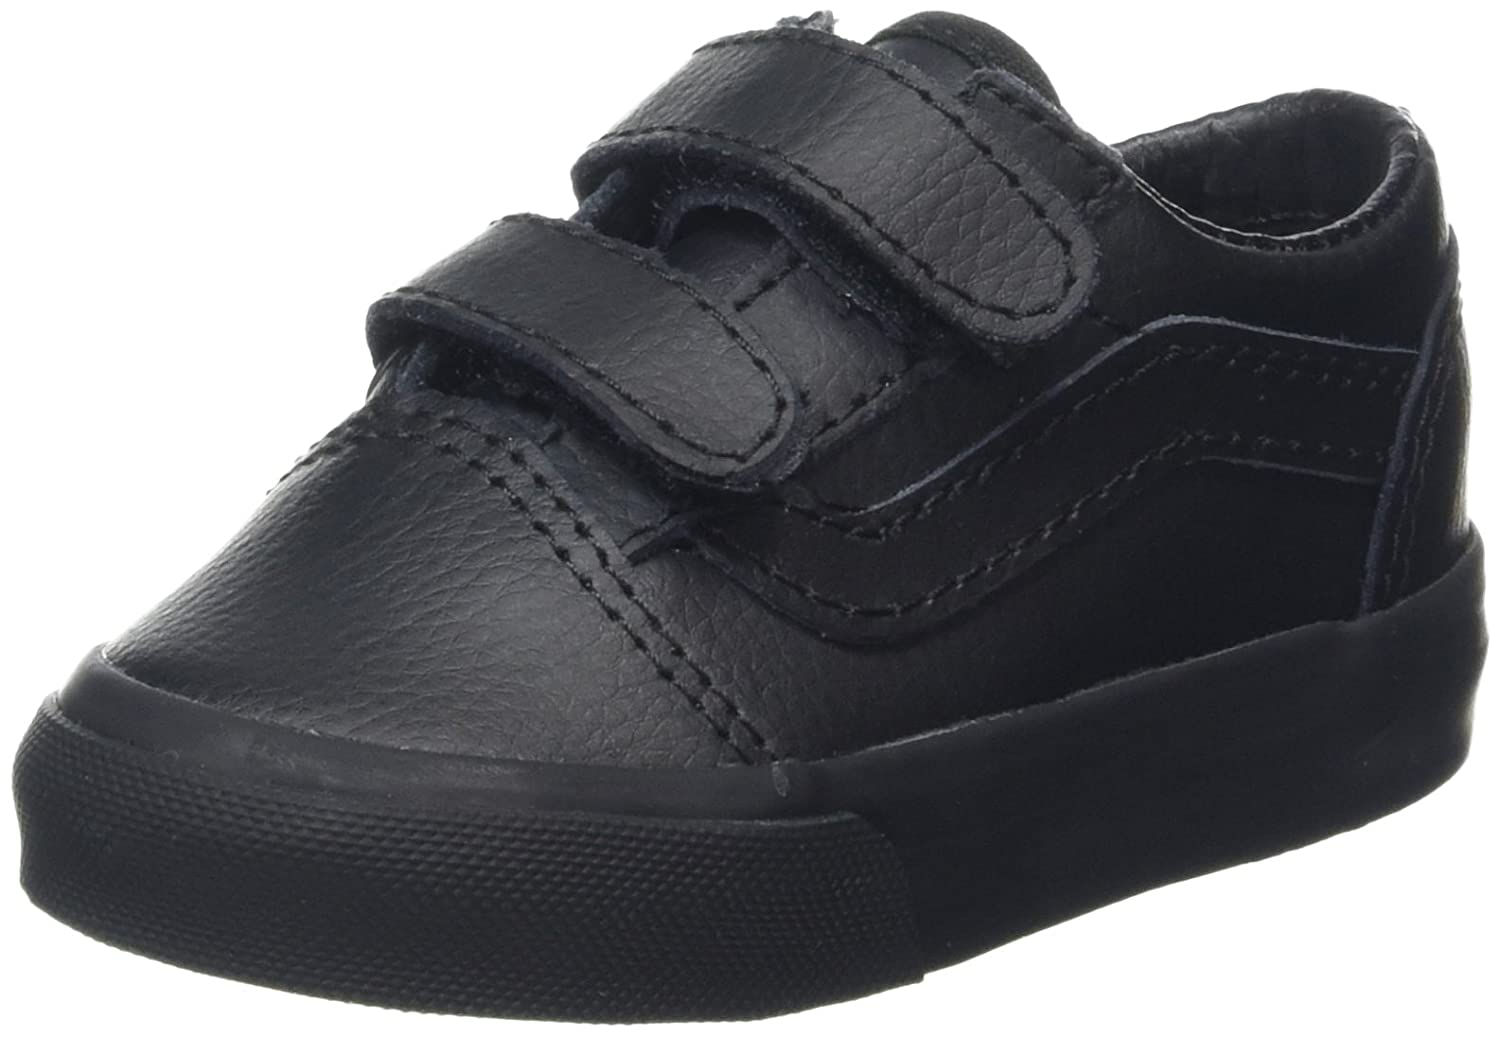 Vans Old Skool V, Botines de Senderismo para Bebés, Negro (Leather Black), 20 EU: Amazon.es: Zapatos y complementos